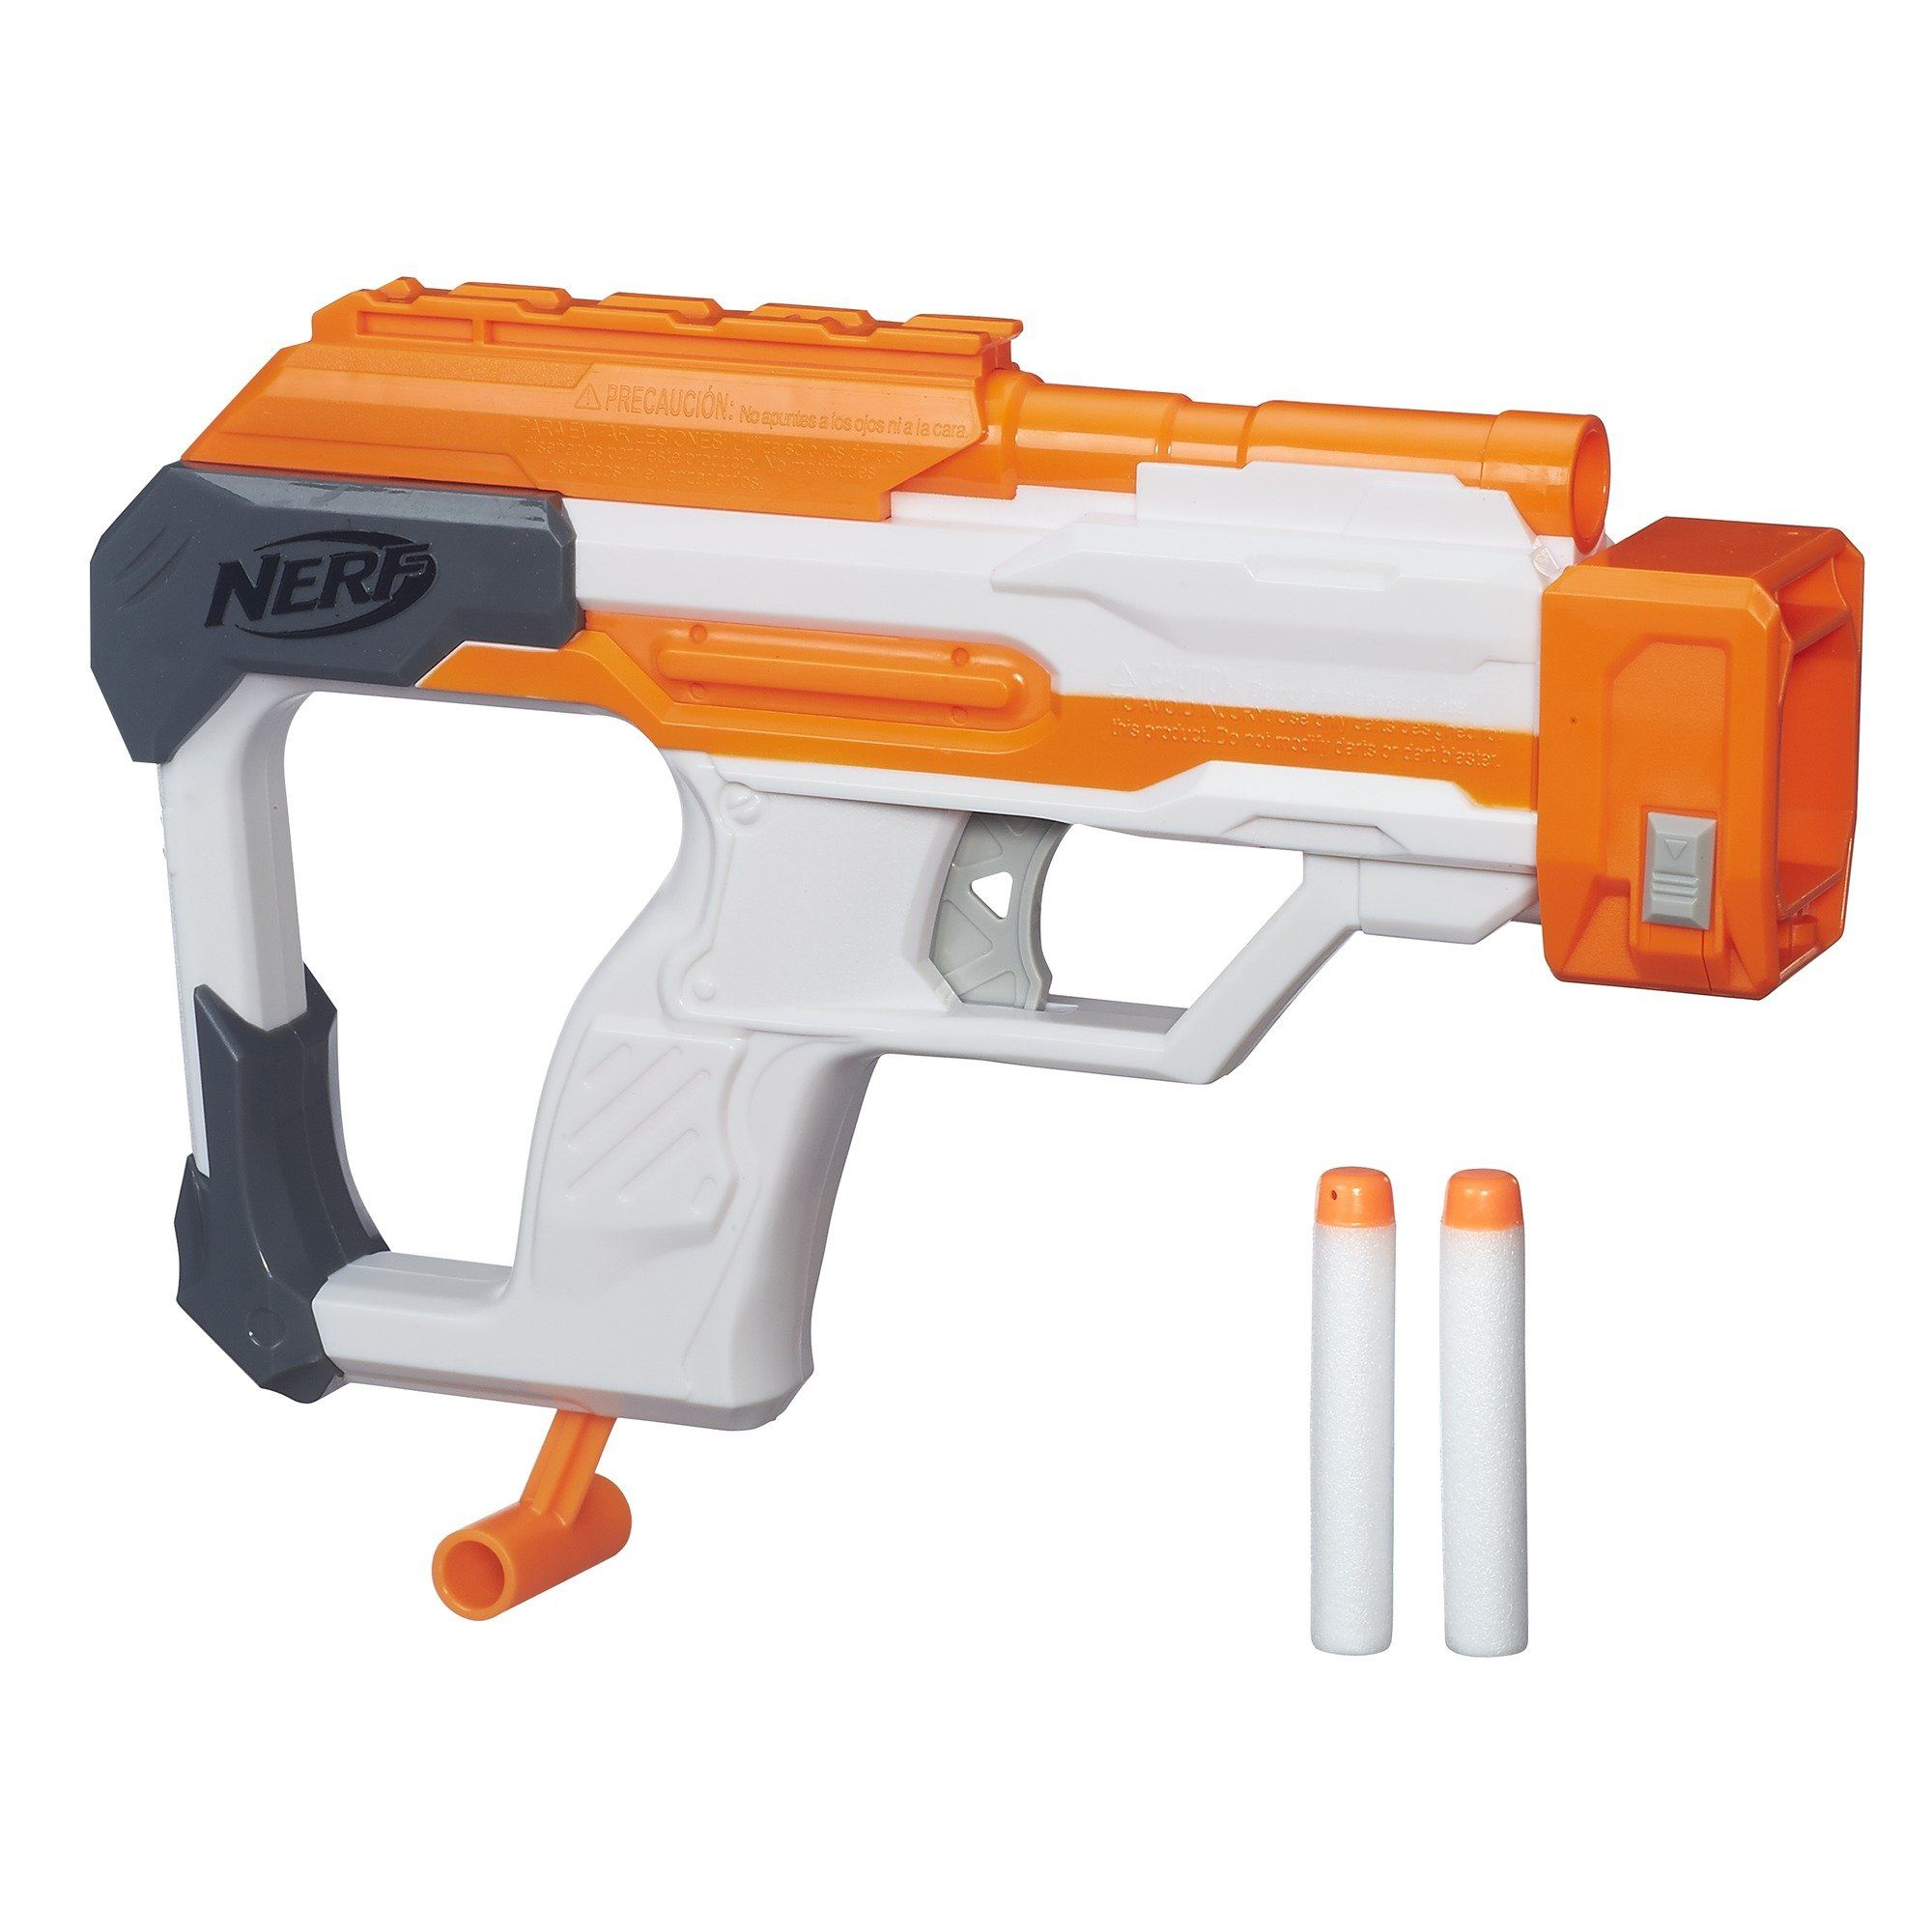 Nerf Modulus Blaster Stock Upgrade Customize your Nerf Modulus blaster sold separately